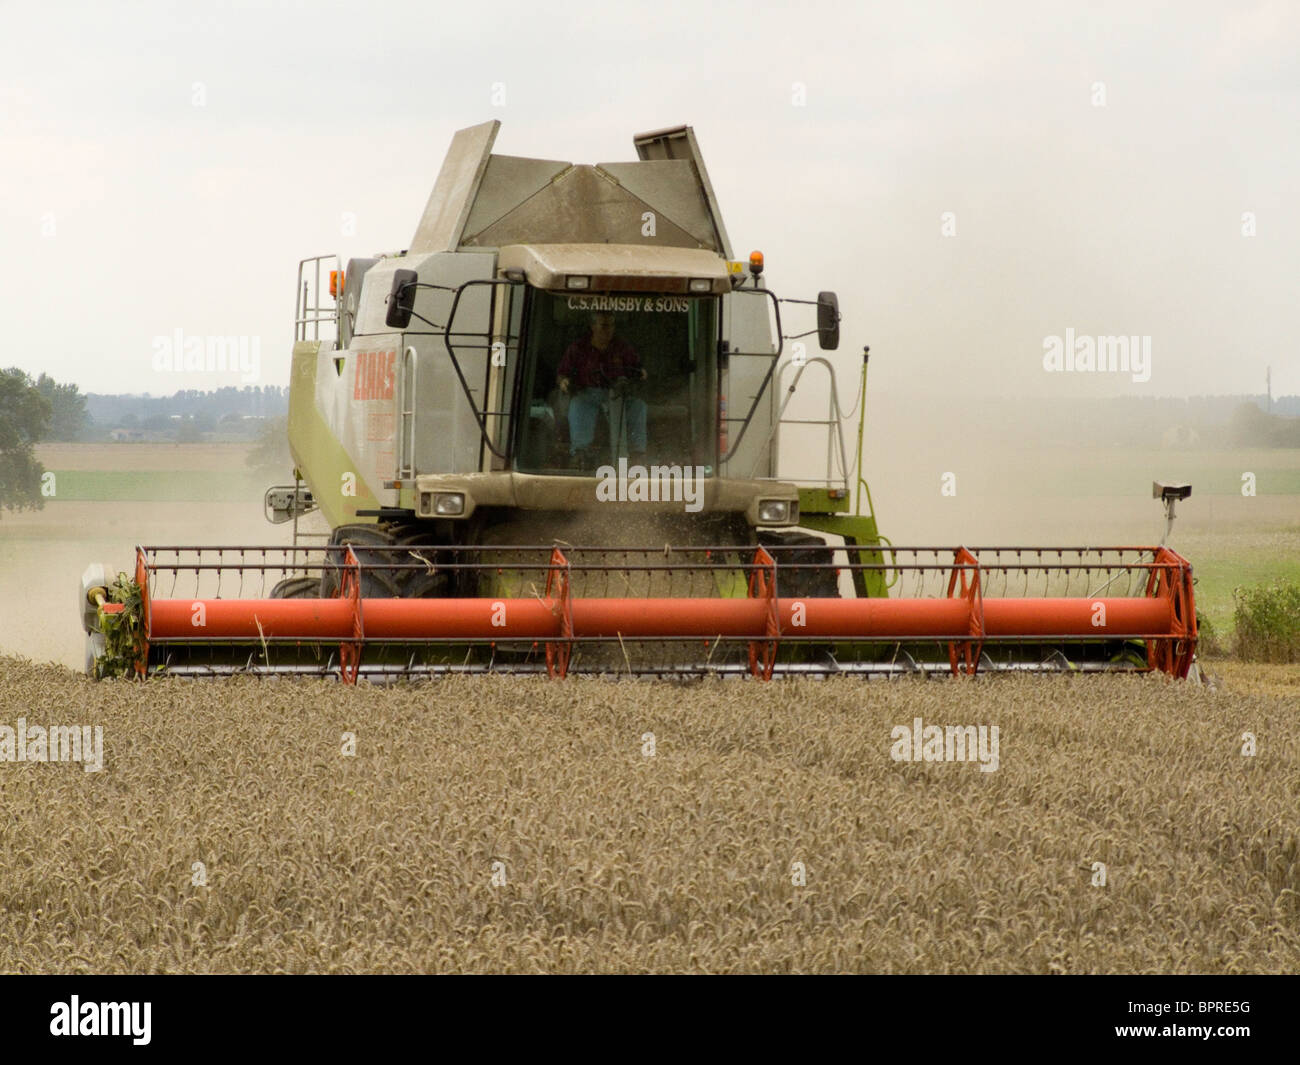 Claas Lexion 480 combine harvester harvesting wheat in a Norfolk field on a bright August day - Stock Image